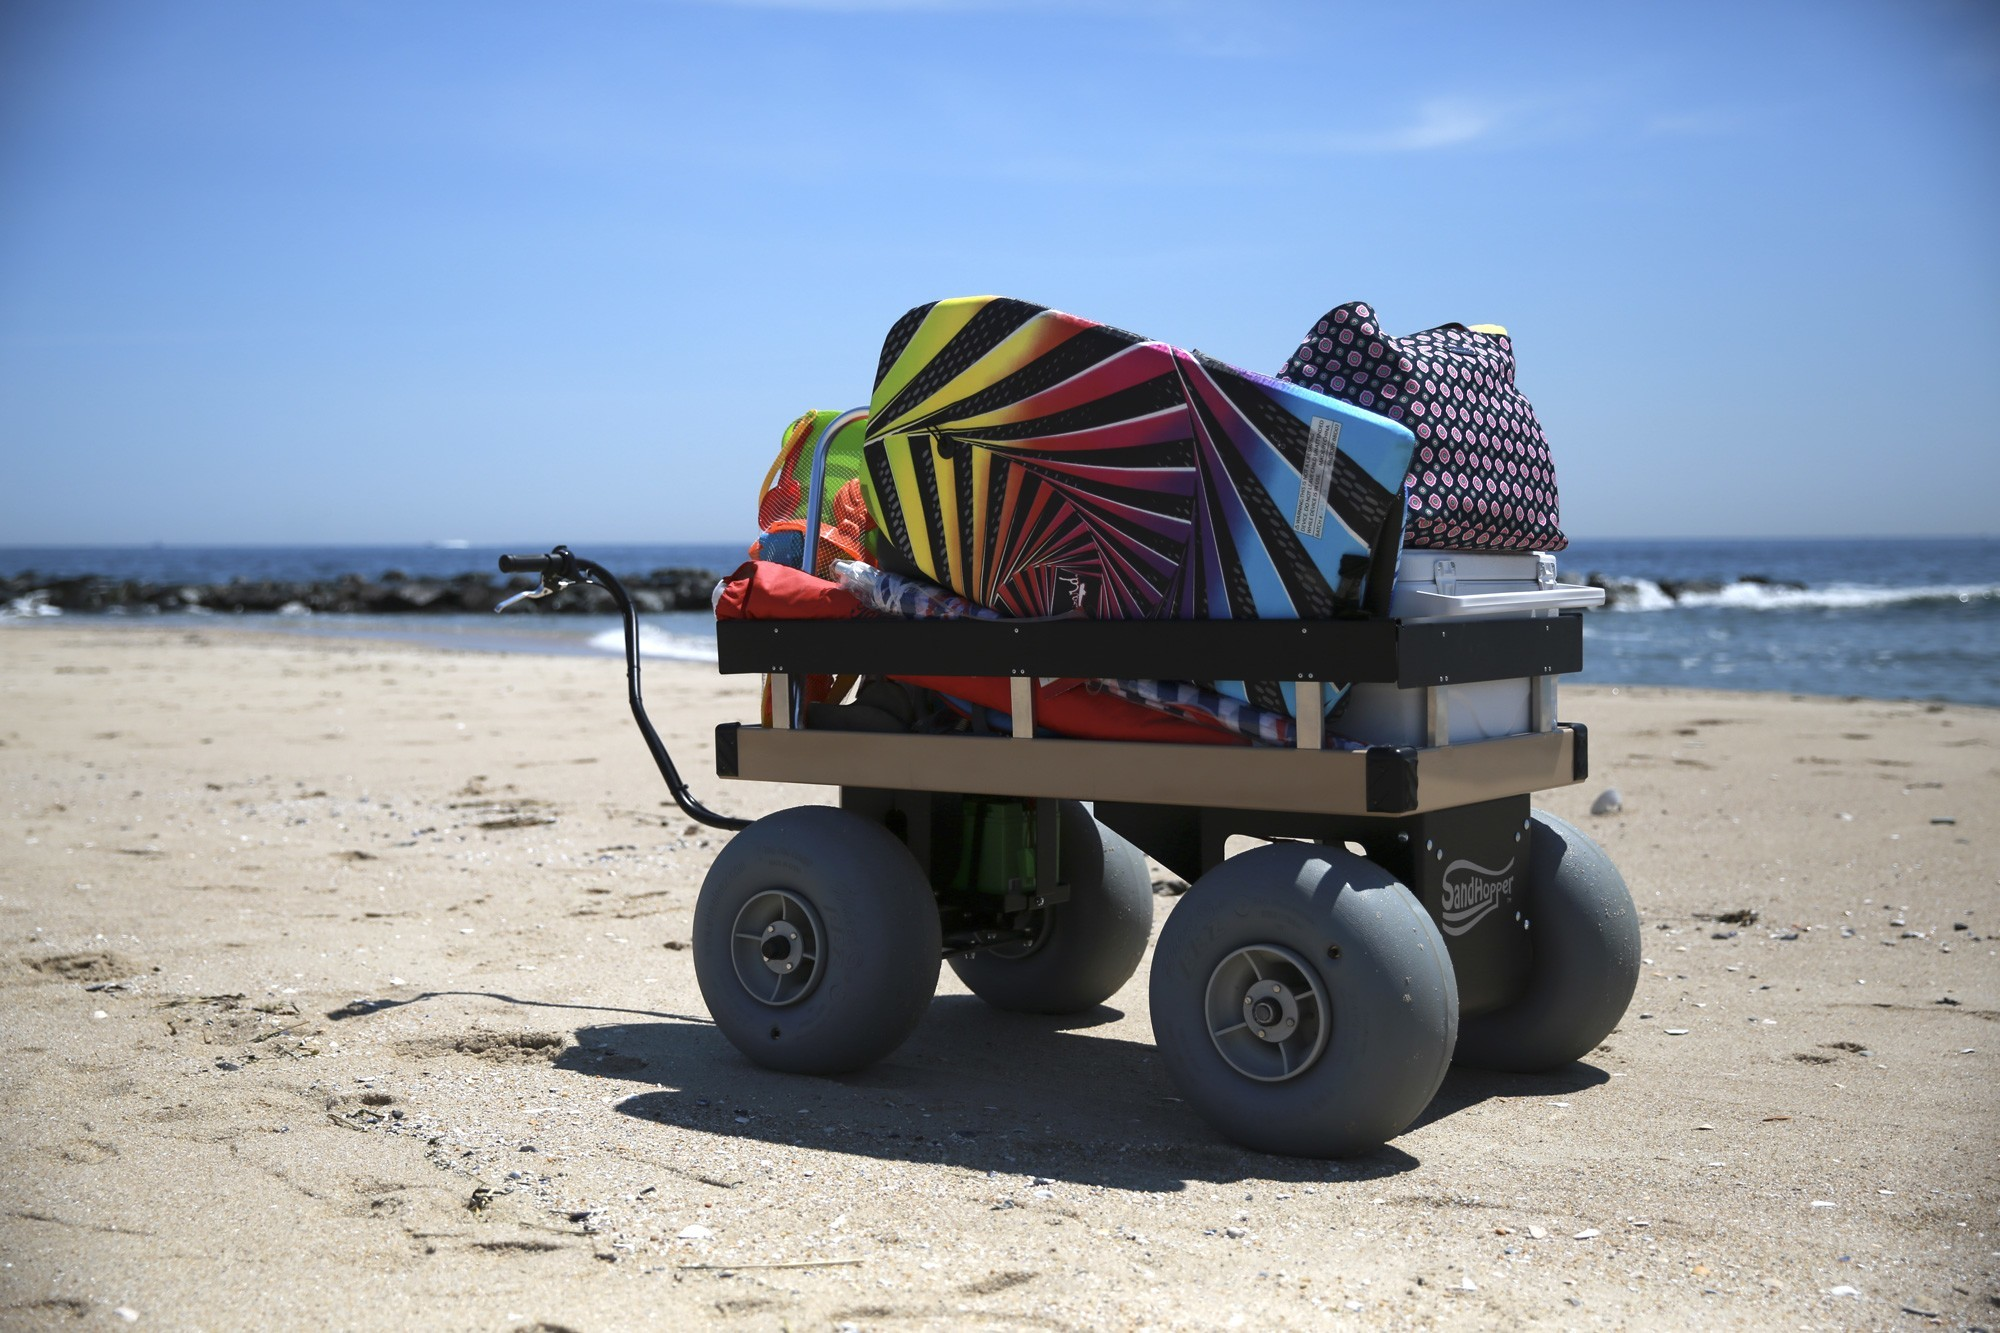 eletric-beach-cart-on-beach-3